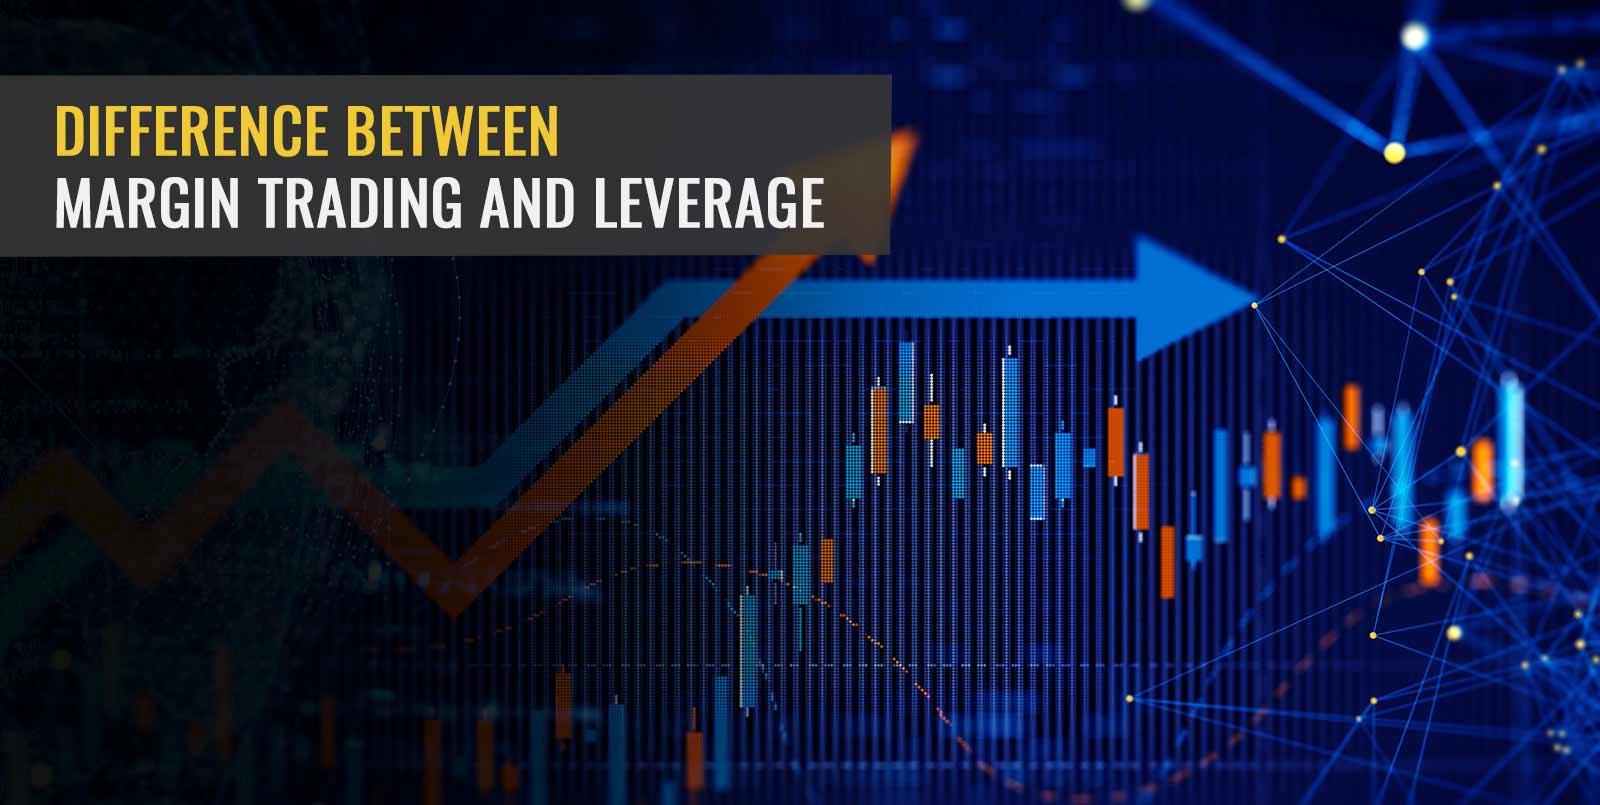 Difference Between Margin Trading and Leverage